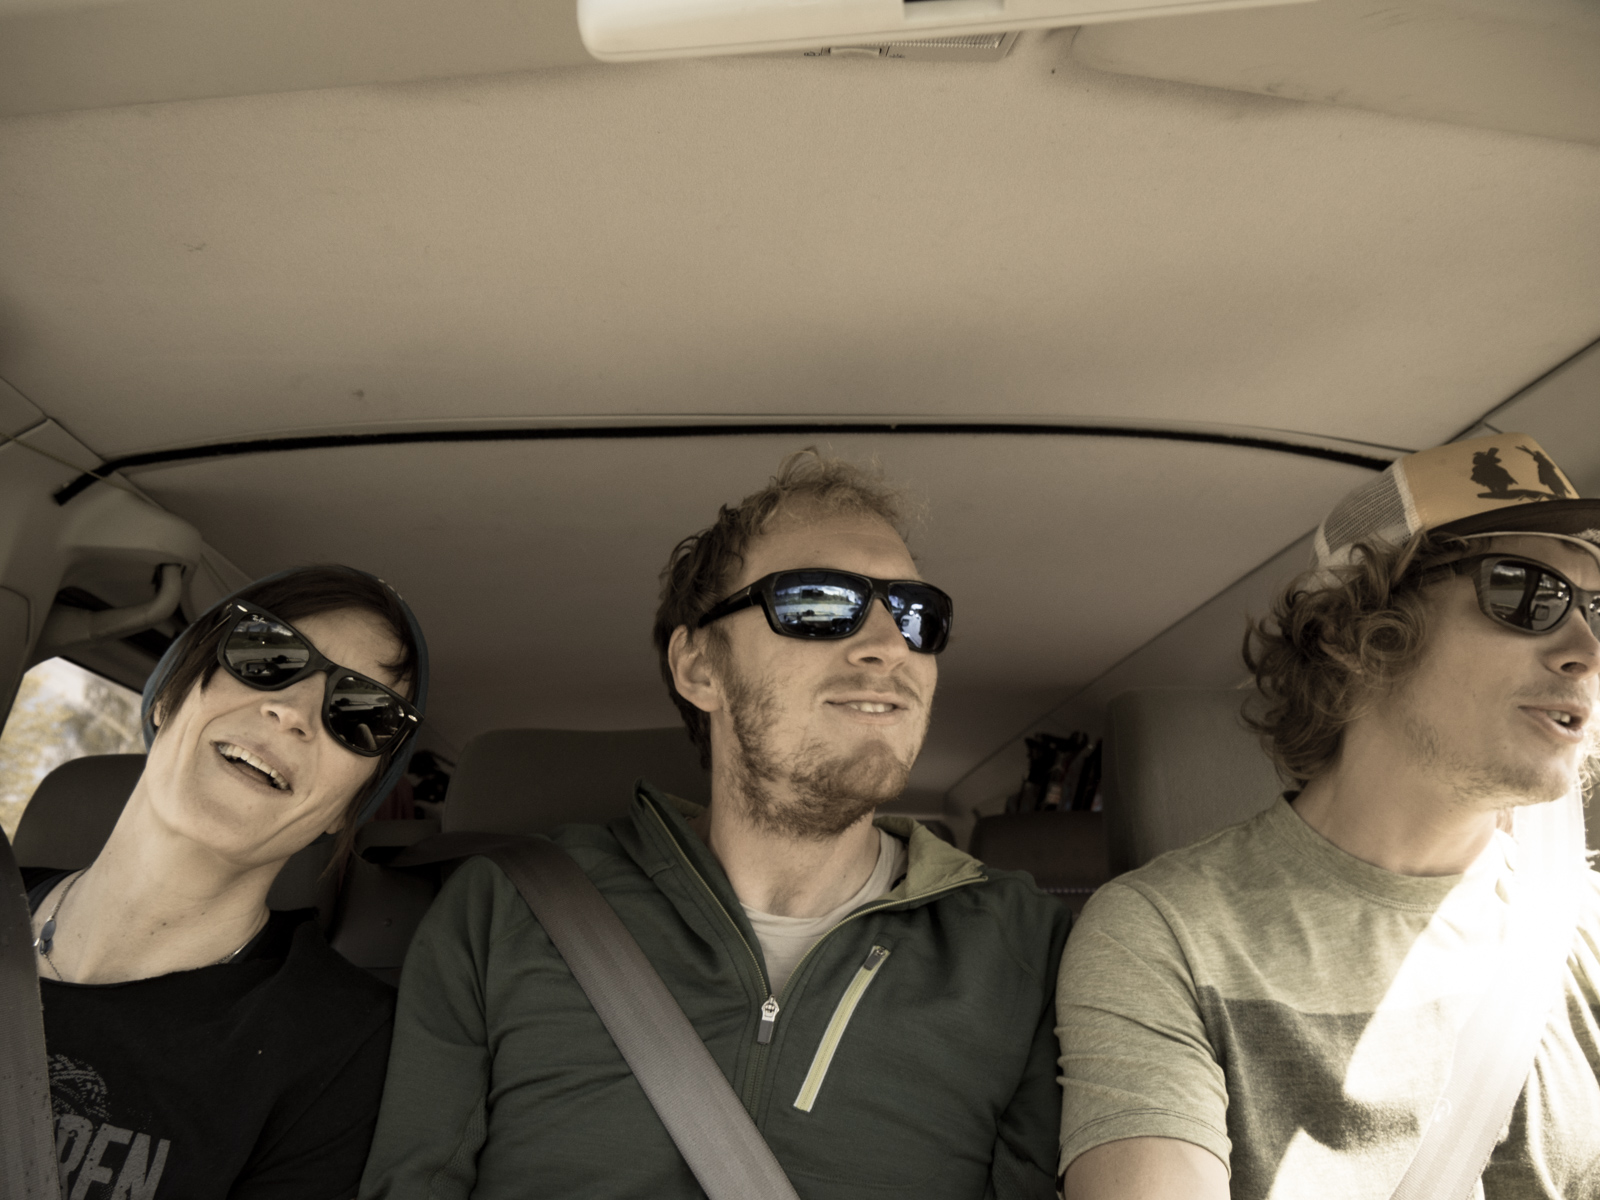 Matt, Andrea, and Martin in the car.